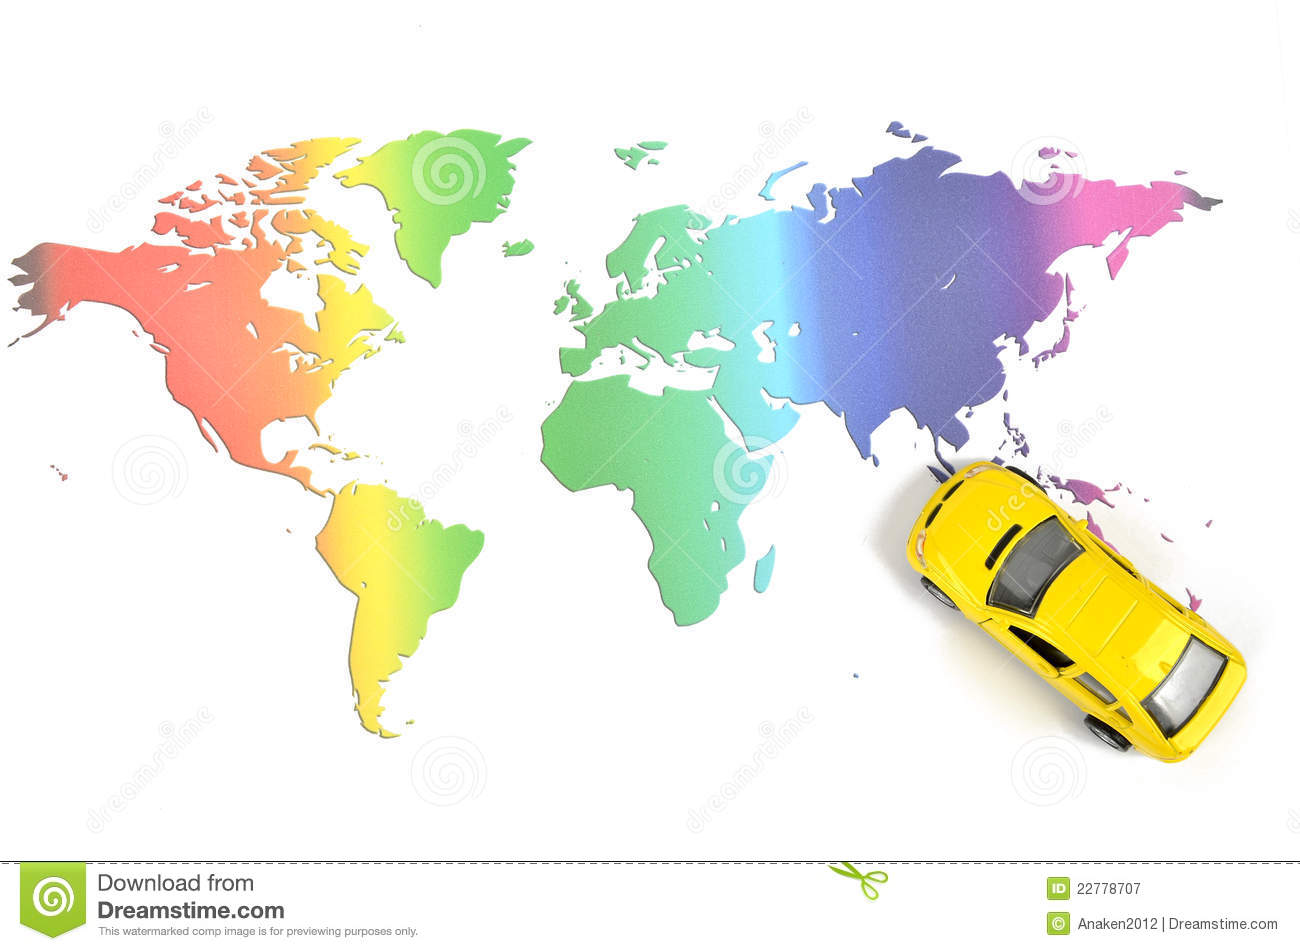 Toy car and world map